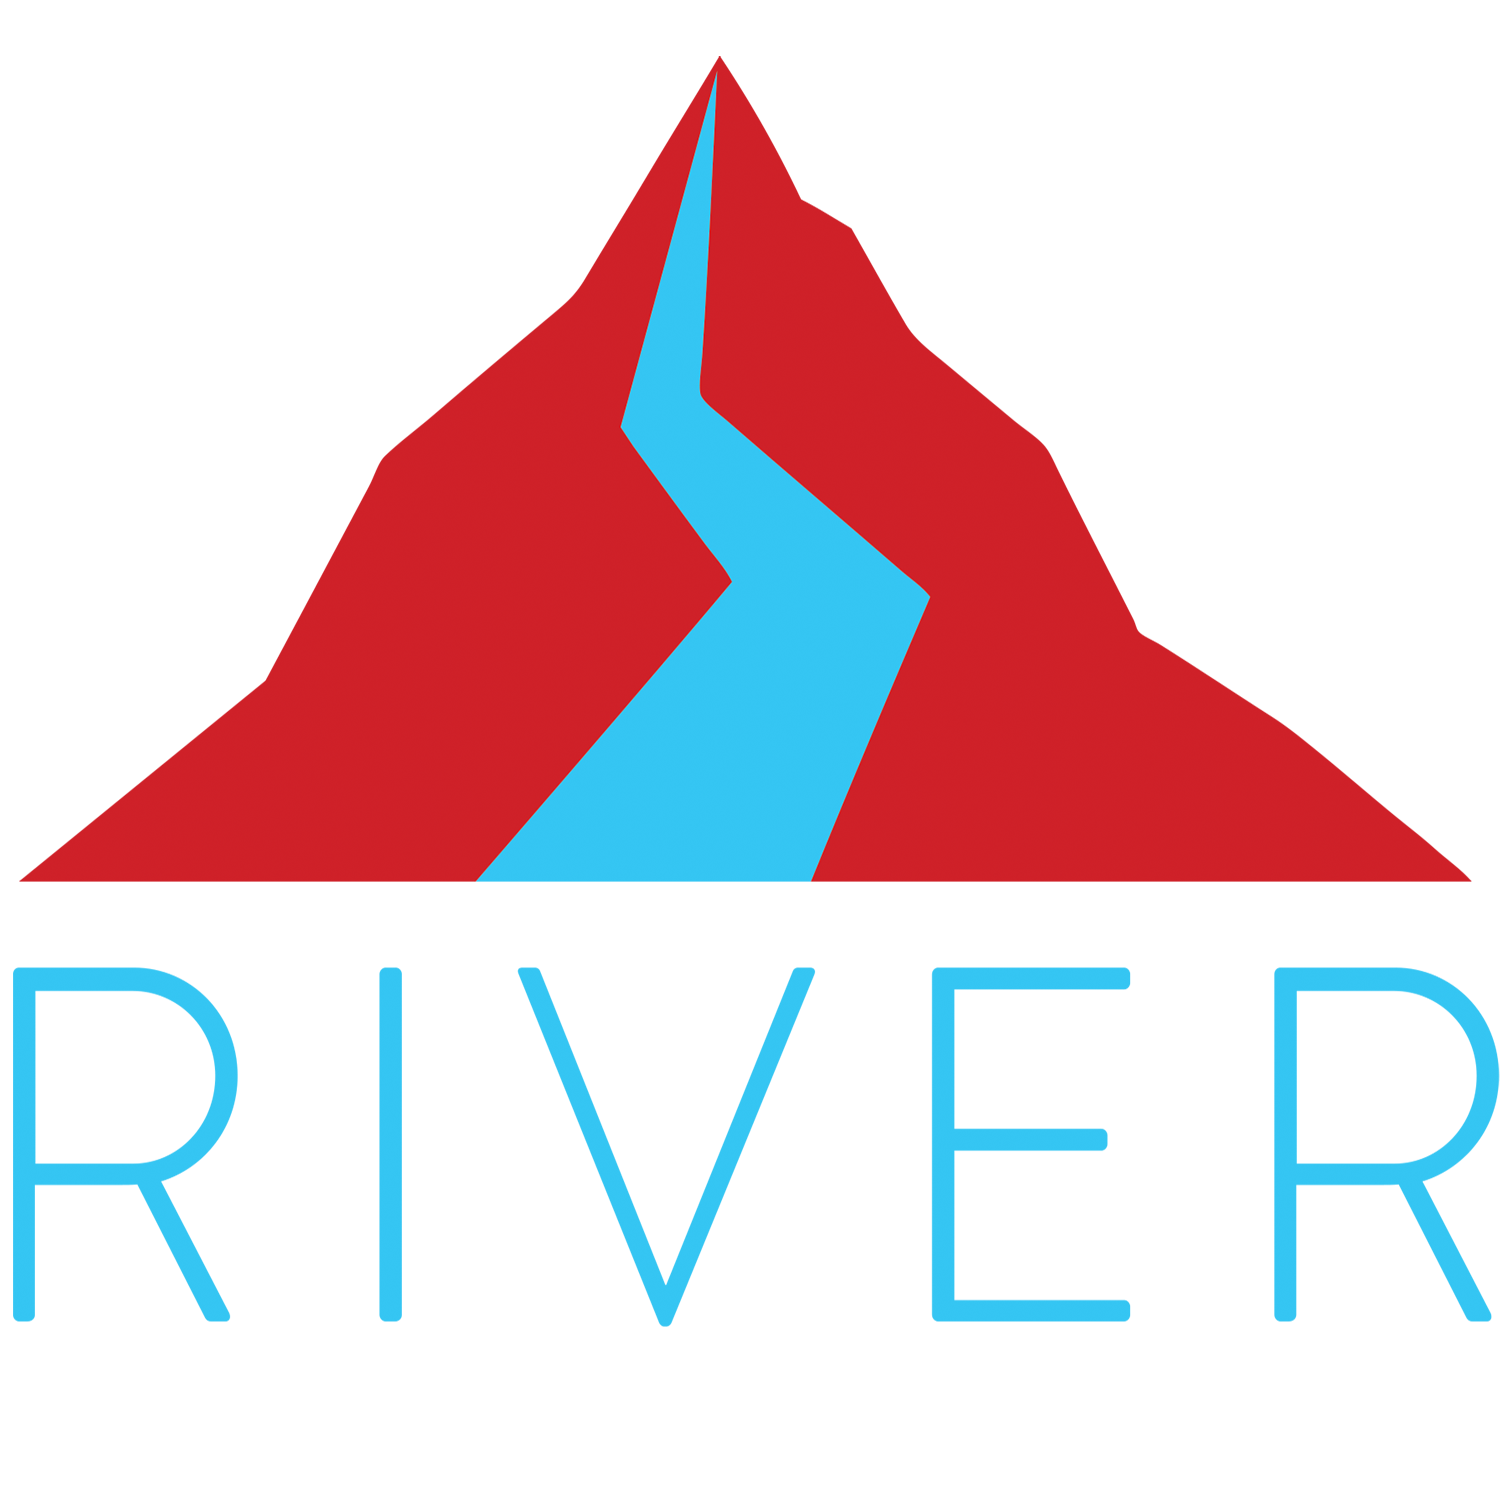 River Ecosystem includes the River Accelerator, the River Network, and the River Lounge in San Francisco.  River Ecosystem is a group of dedicated dreamers who pledged to lead the movement of popularizing Virtual Reality amongst the masses.  River Ecosystem works with startups and investors in the fields of frontier technologies.  The River Network creates events that facilitate networking between frontier technology entrepreneurs, startups, and investors including our Founder Field Day event at AT&T Park.  The River Accelerator program focuses on frontier technologies such as AR, VR, AI, drones, machine learning, robotics, and more.  River Accelerator provides startups with mentorship from top luminaries, workspace in SOMA, access to the River Lounge, meetups/happy hours, the River Accelerator Demo Day, and a $100,000+ initial investment.  The River Accelerator has helped over 40 frontier technology companies raise over $100M in funding.